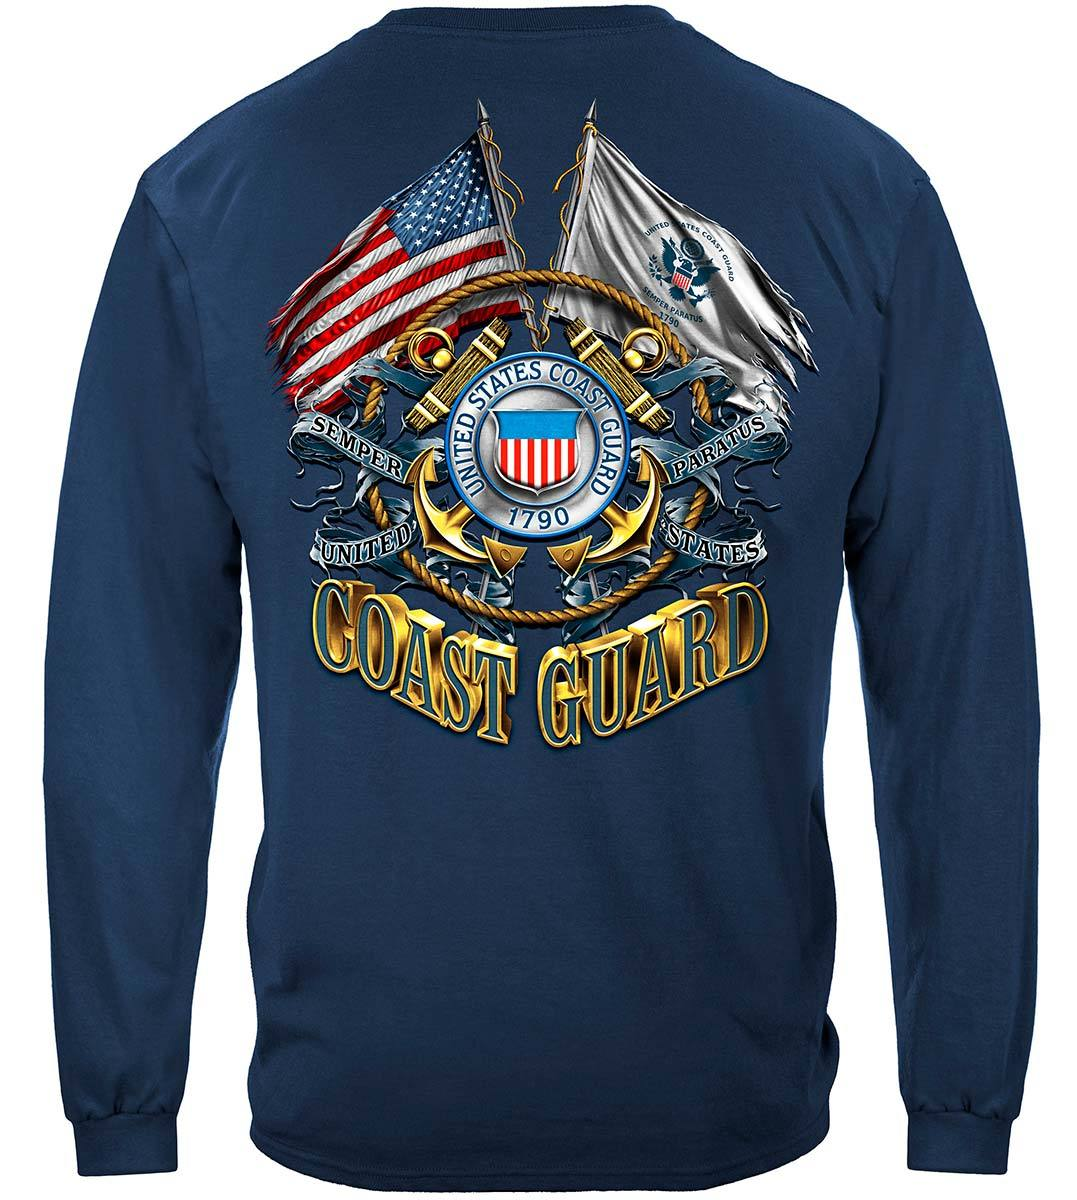 Double Flag Coast Guard Premium Long Sleeves